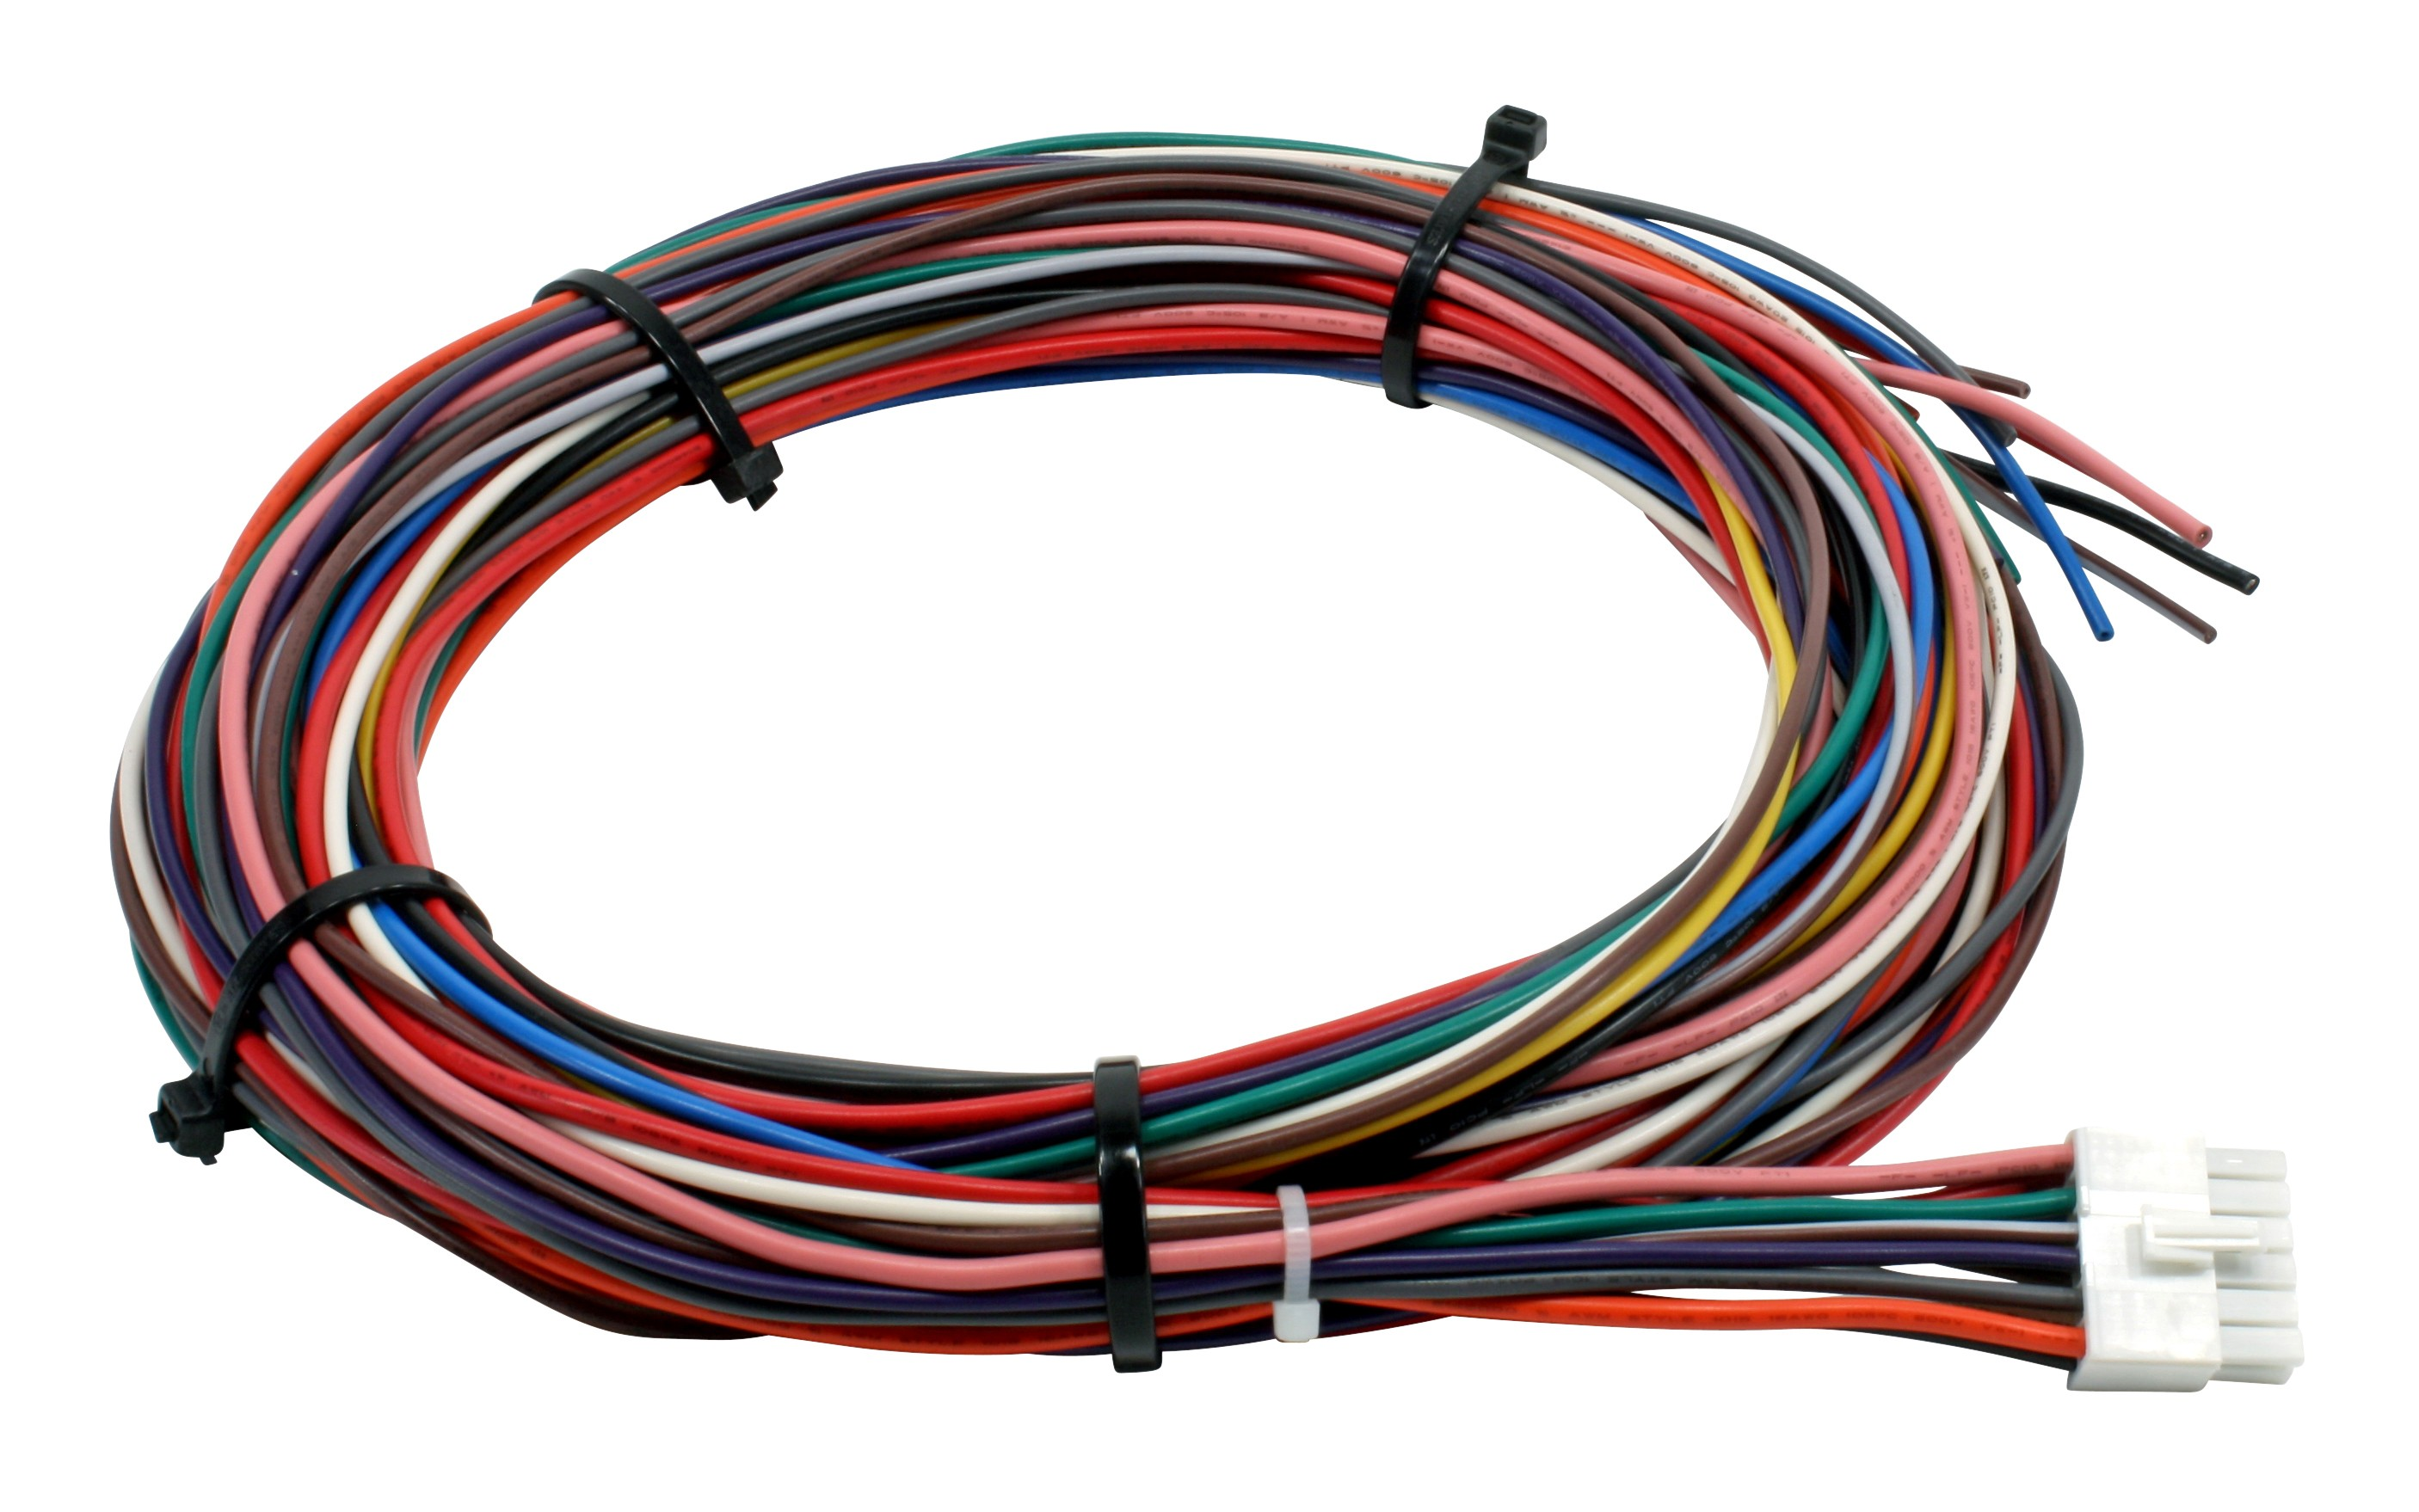 Wiring Harness For V2 Controller With Internal Map Sensor Standard Electrical Or Hd